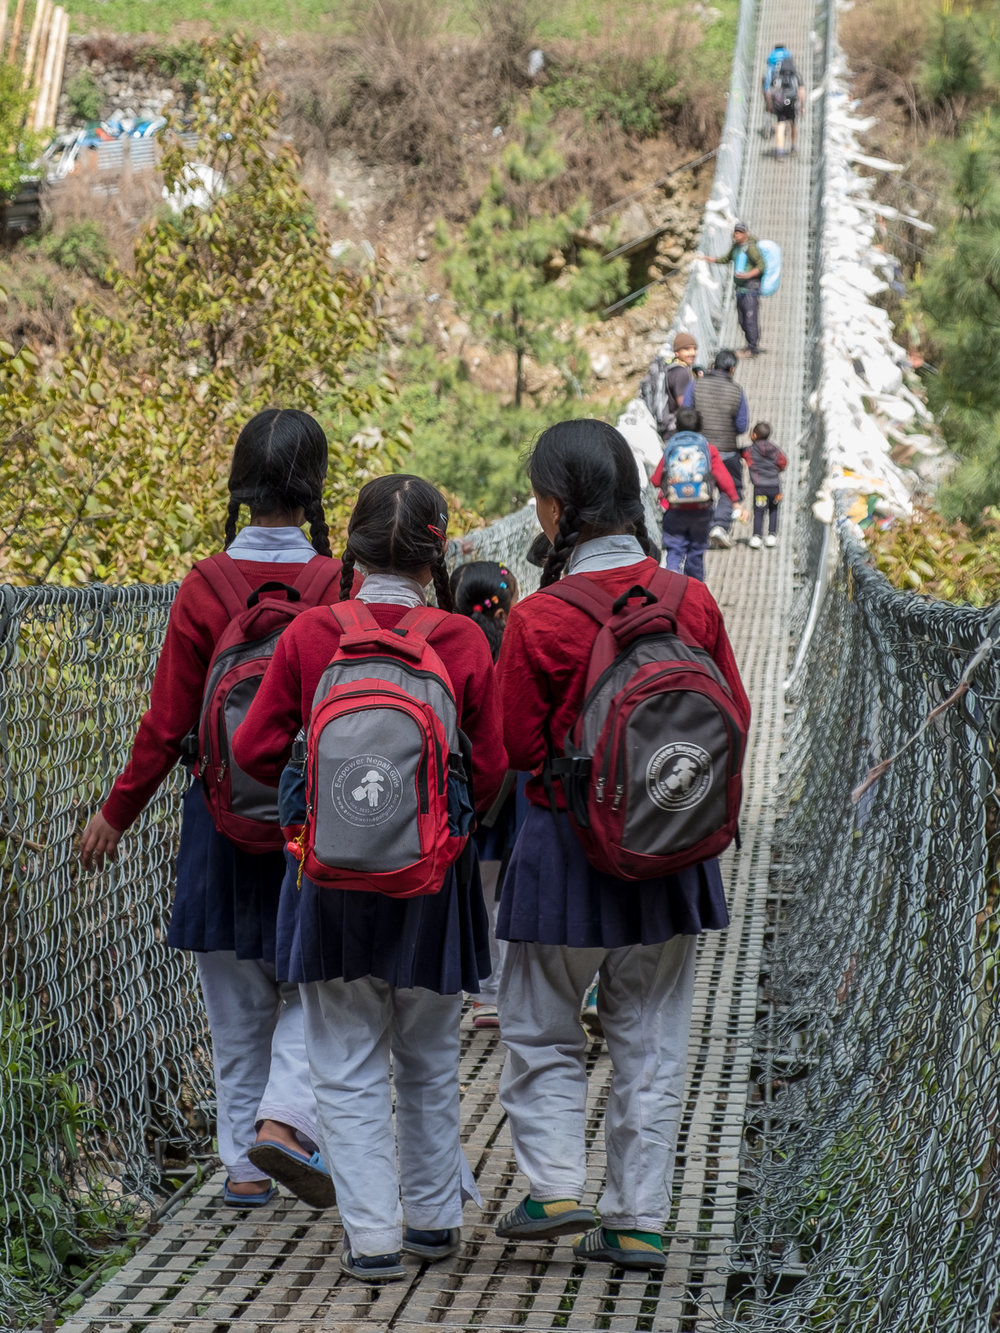 Young girls crossing to Dudh Kohsi on their way to school, Phakding, Nepal.